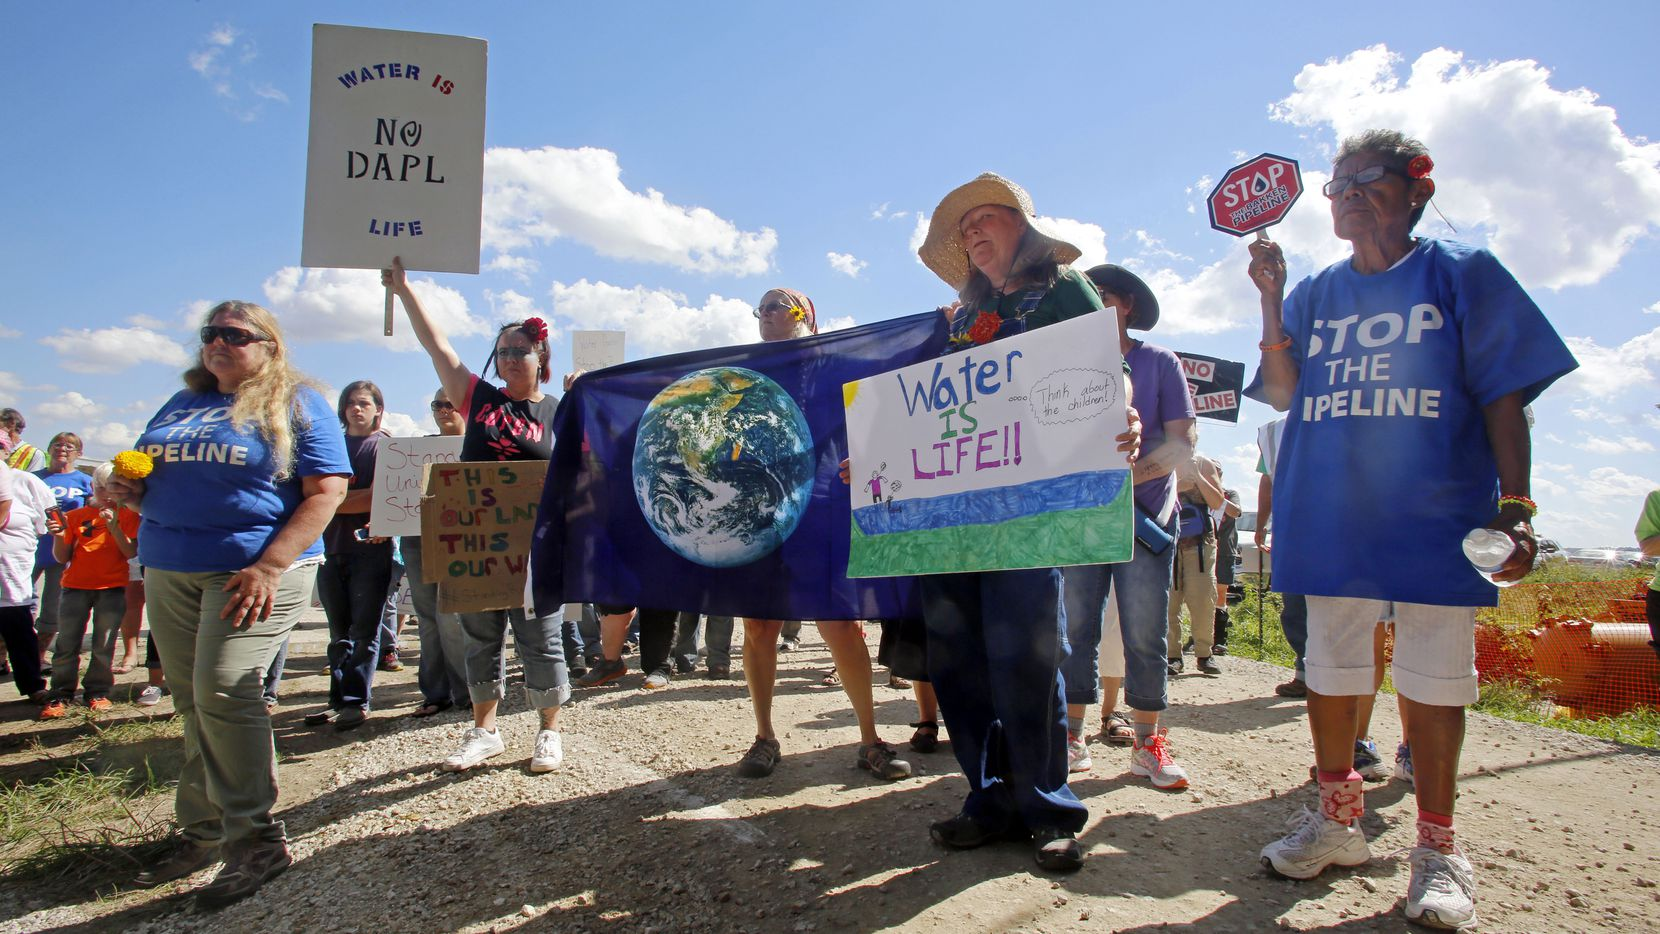 A group of people hold signs as they prepare to trespass into a Dakota Access Pipeline construction site during a protest which took place at a pipeline construction site Saturday, Sept. 17, 2016, in Montrose, Iowa. (Erin Lefevre/The Hawk Eye via AP)